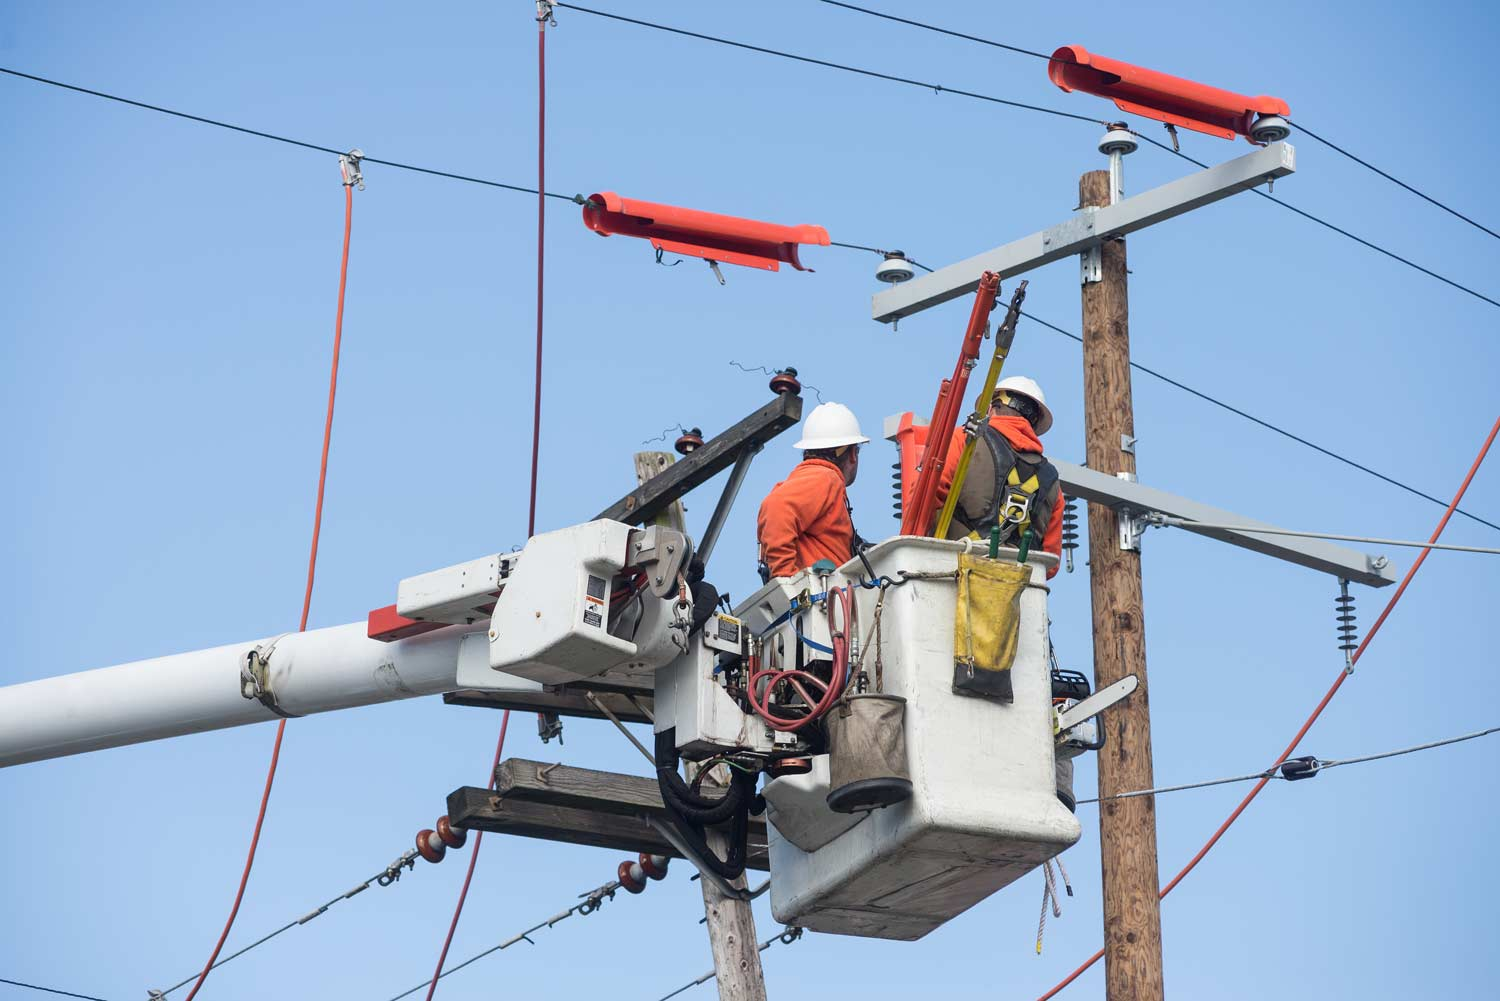 Linemen in bucket truck working on electric utility lines